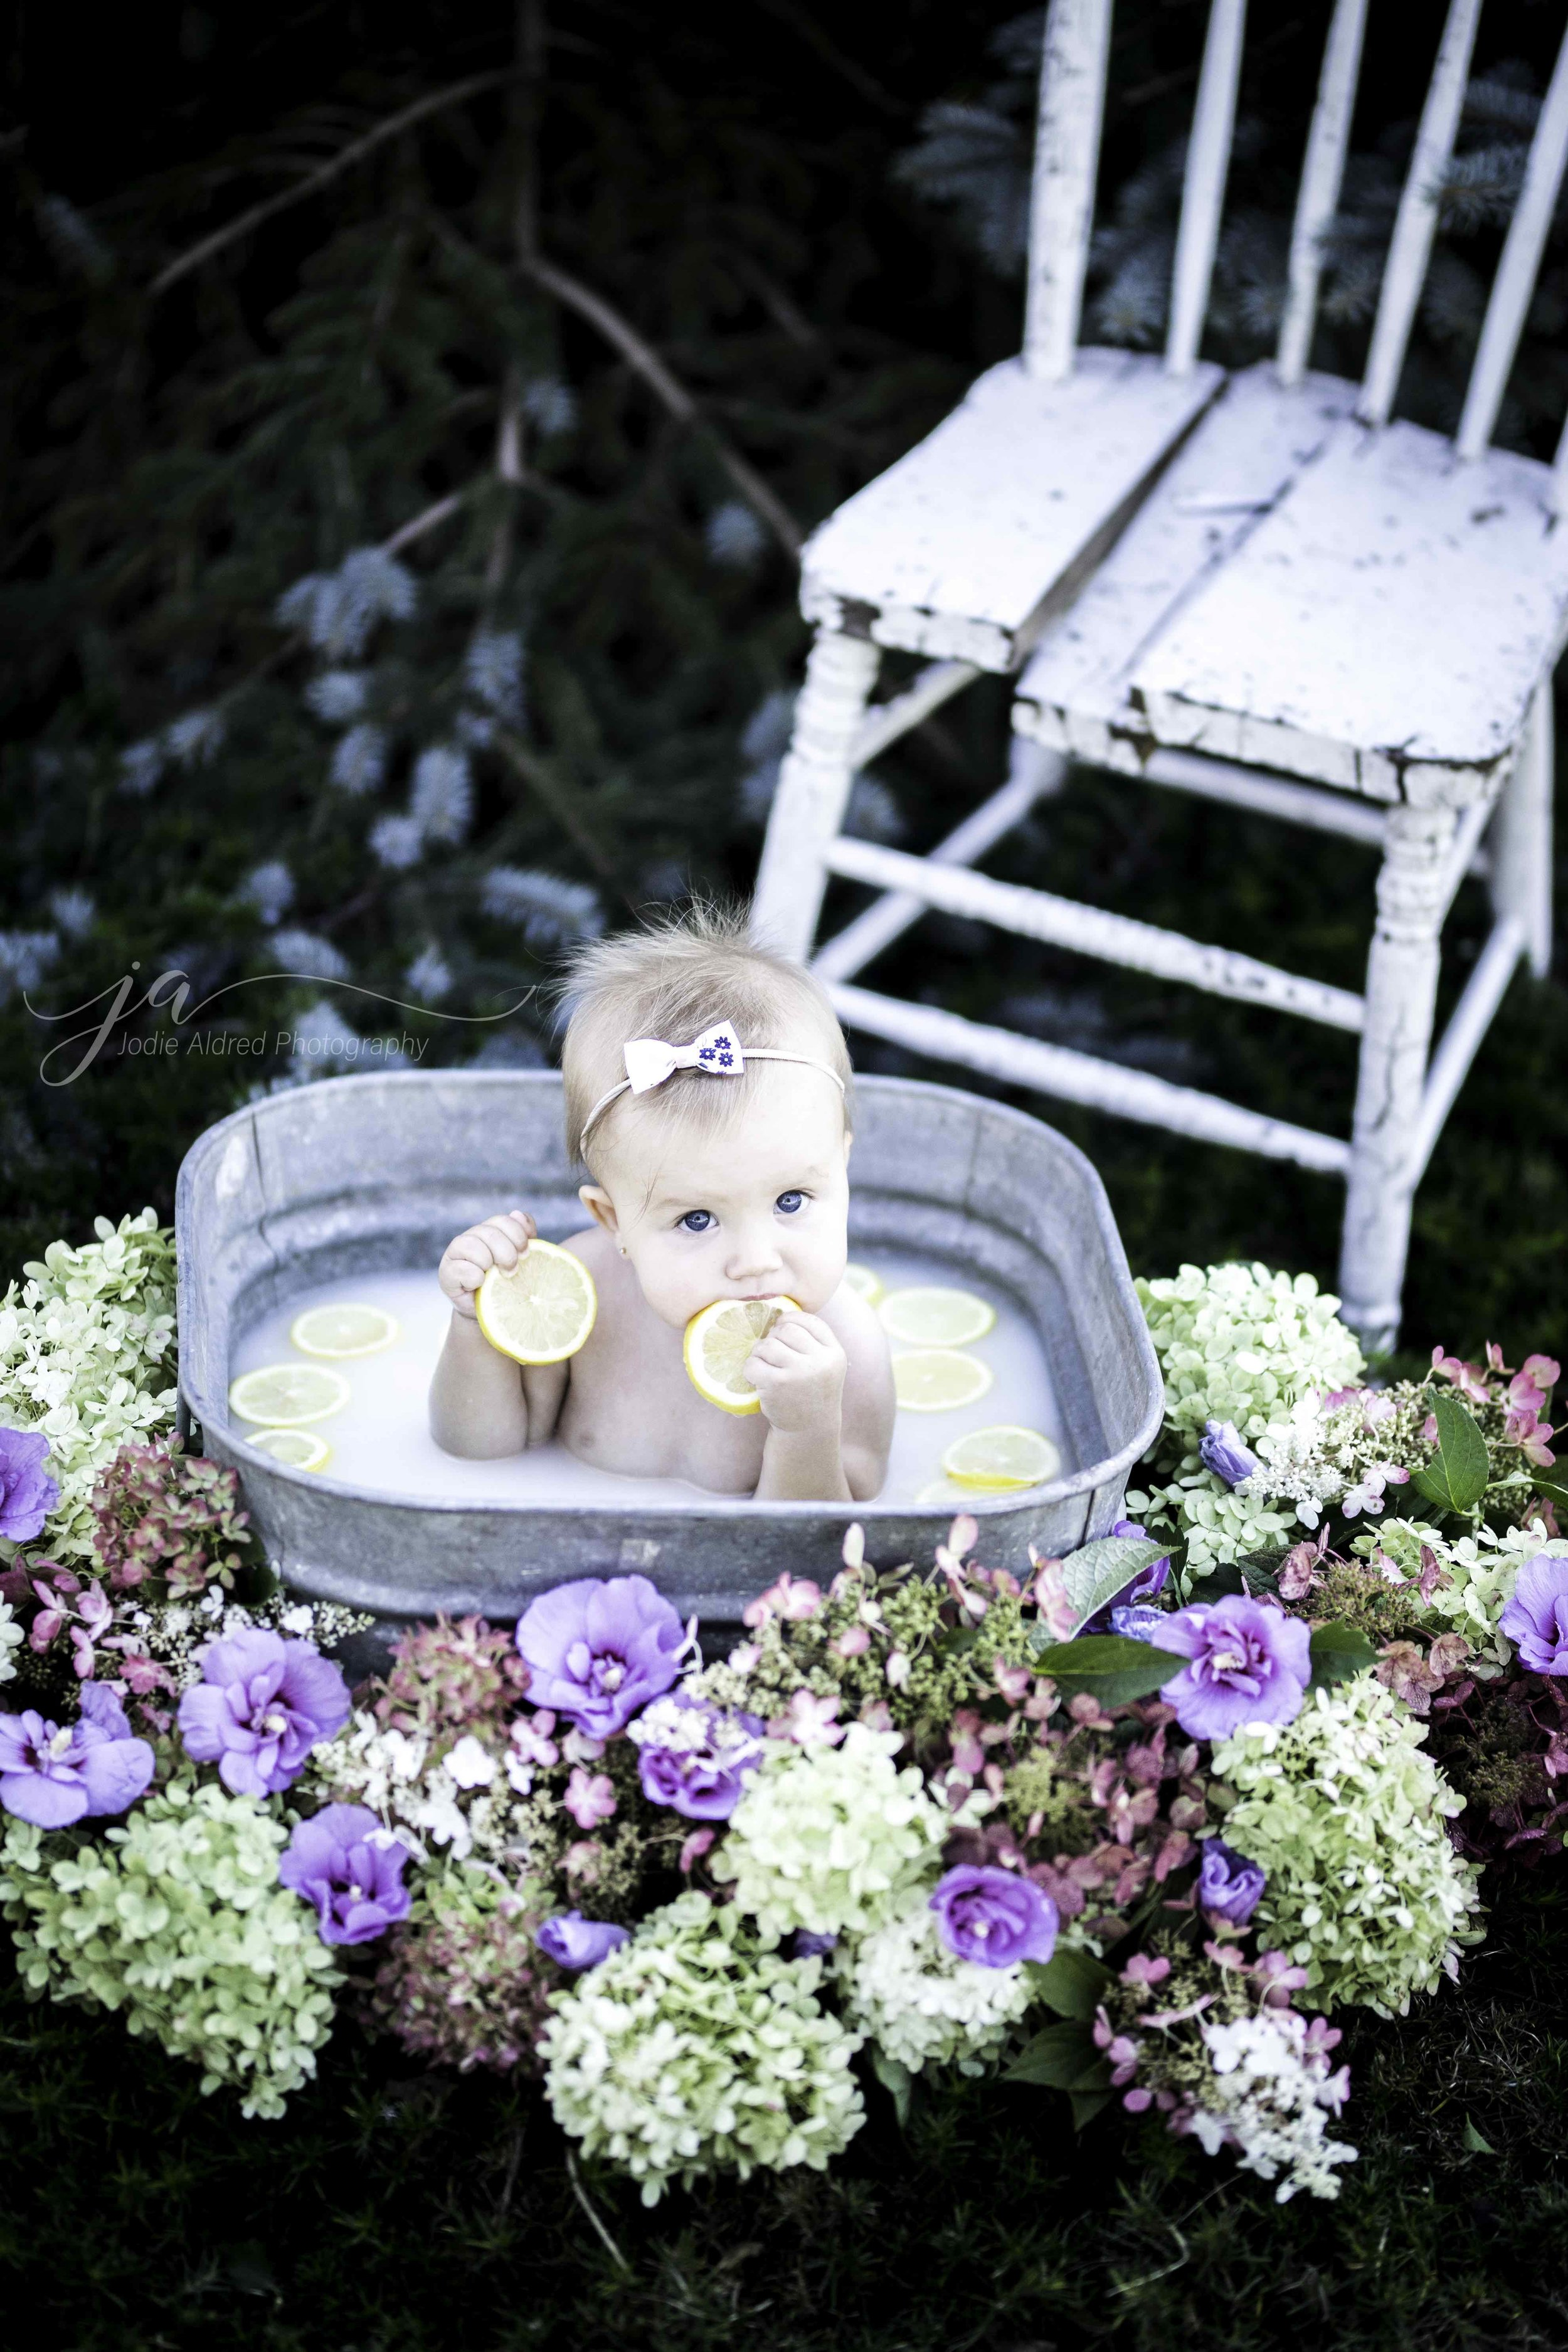 Jodie-Aldred-Photography-Chatham-Kent-Elgin-Middlesex-London-Ontario-Farm-Family-Baby.jpg